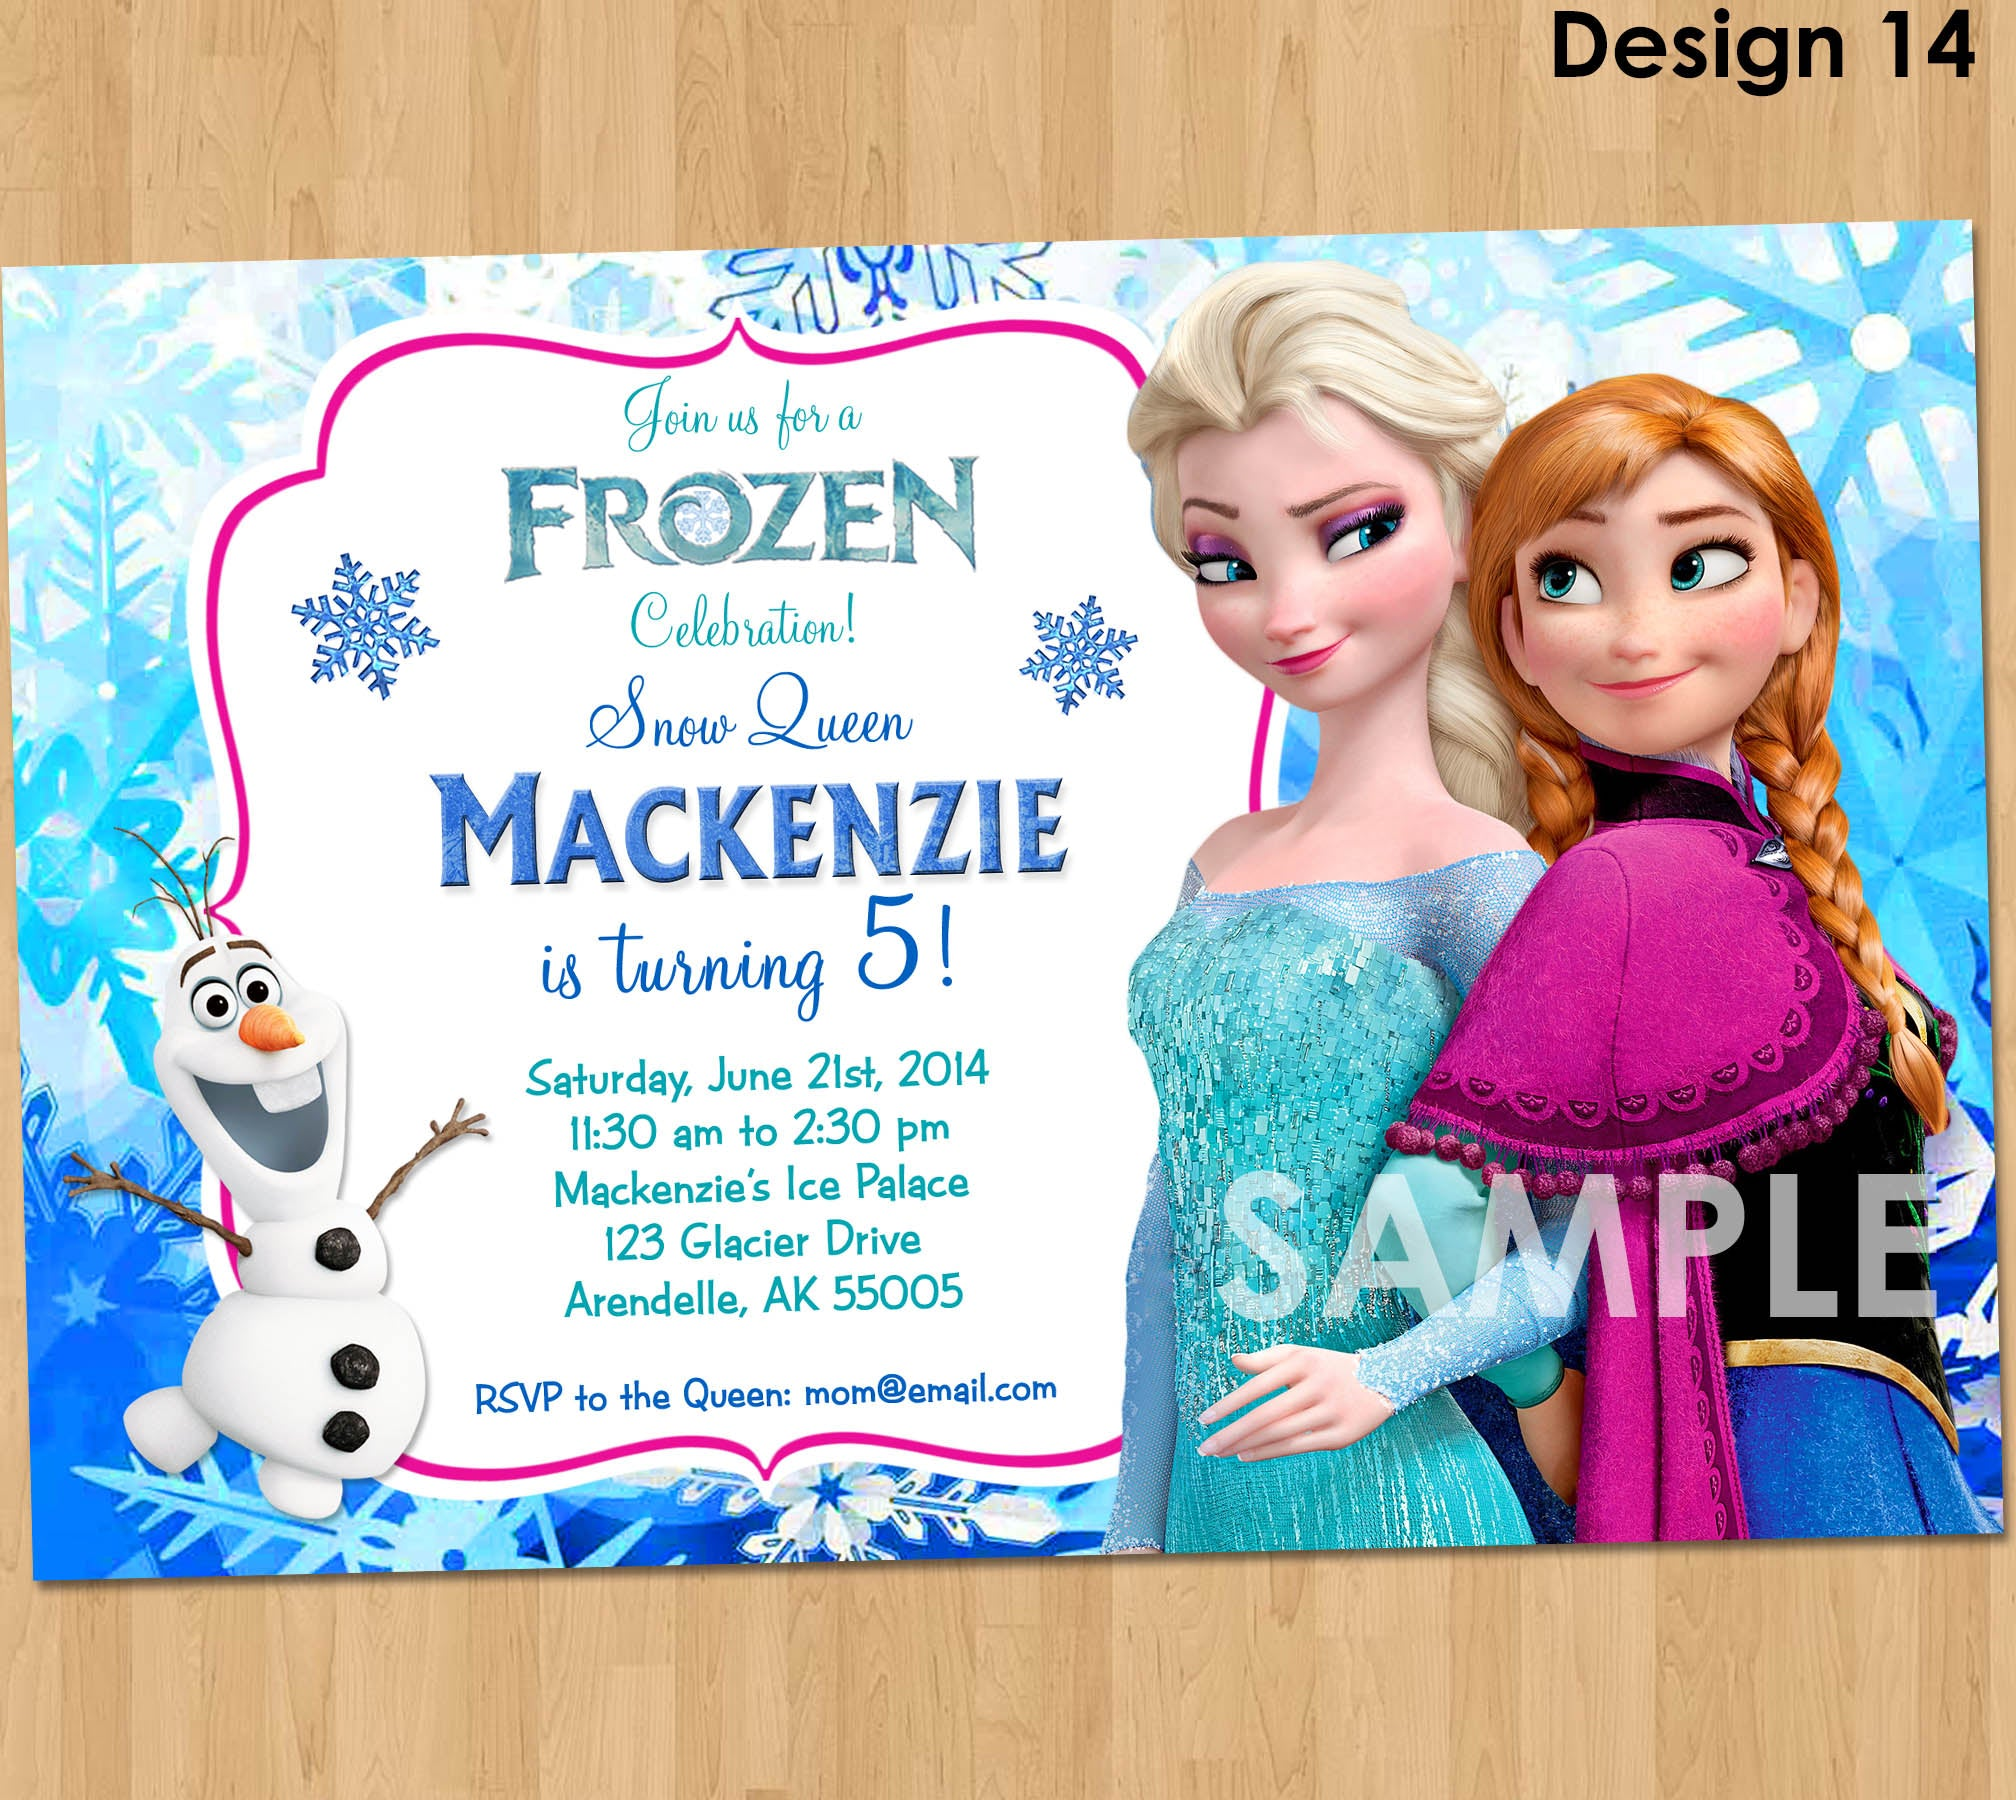 graphic about Frozen Invites Printable named Frozen Invitation - Frozen Birthday Invitation - Disney Frozen Bash Invitations - Birthday Occasion Options Printable Elsa Anna Olaf